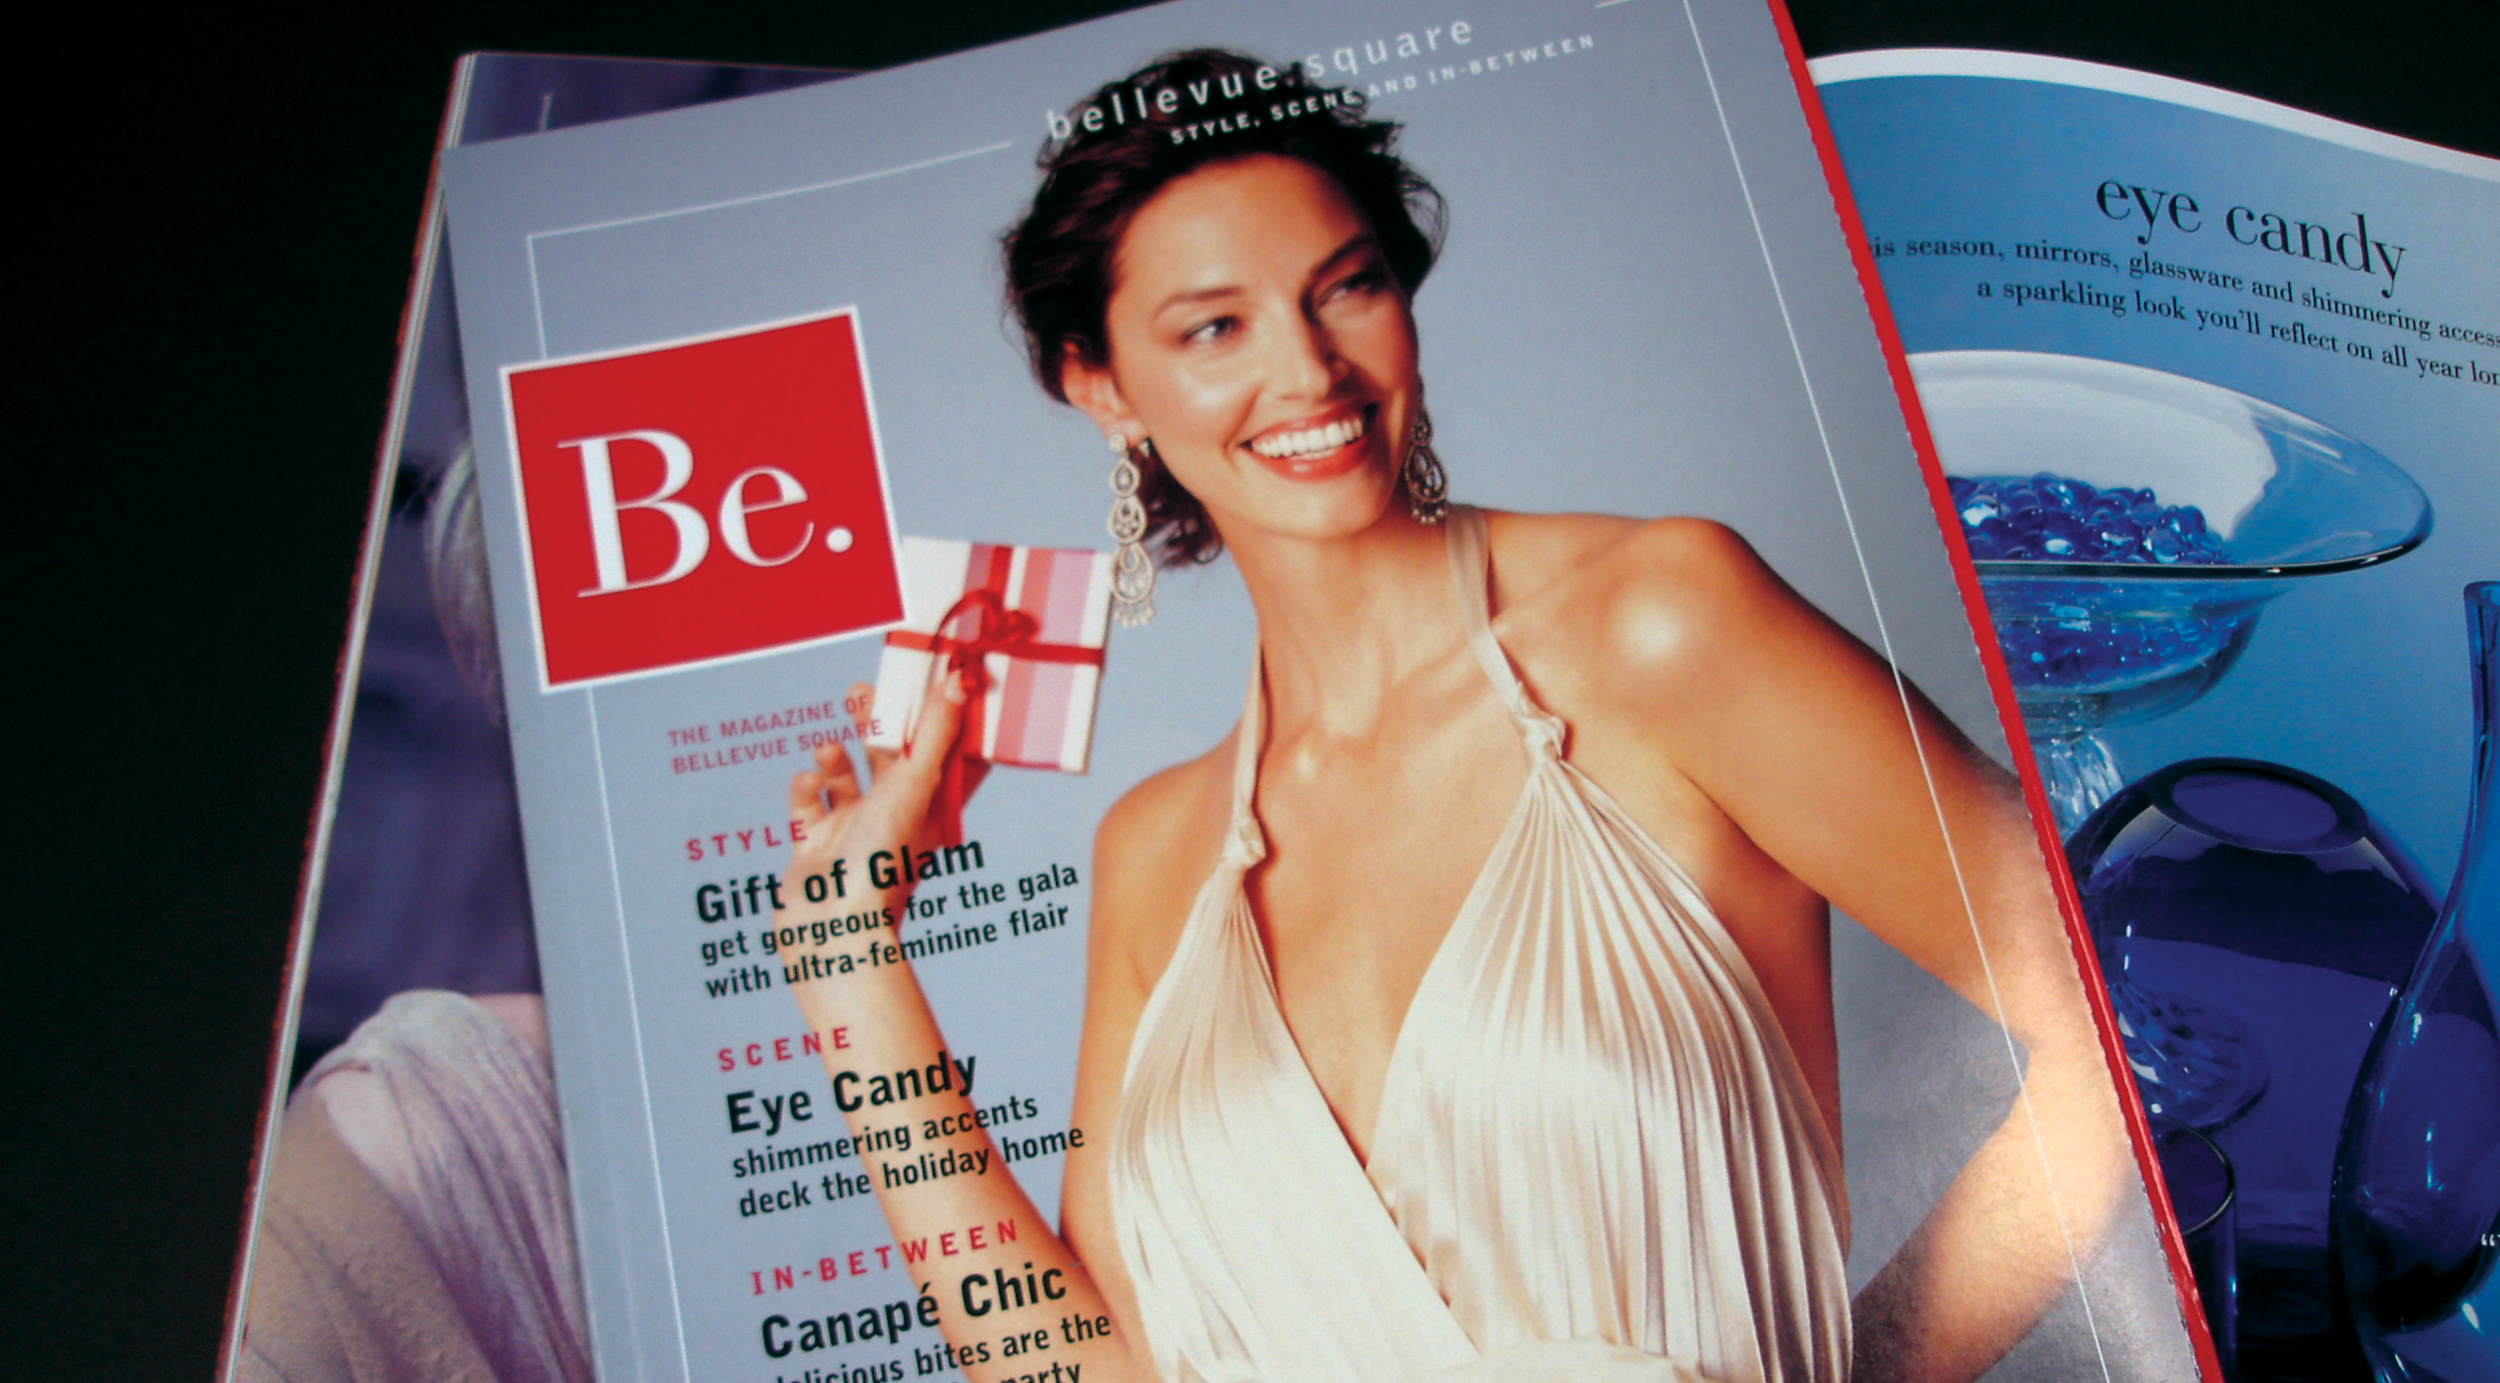 Be. Magazine - A brand make-over